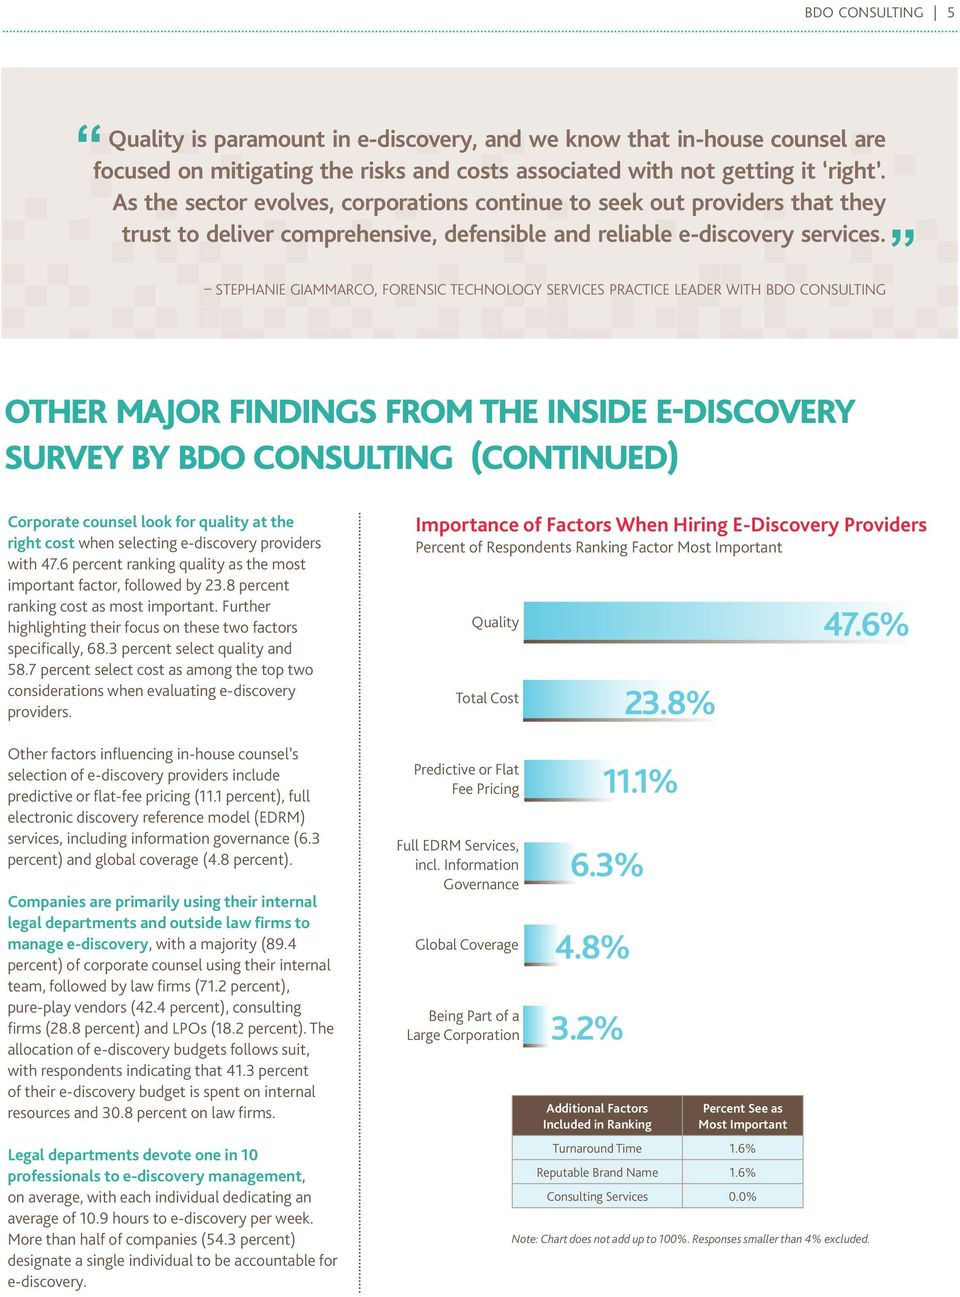 STEPHANIE GIAMMARCO, FORENSIC TECHNOLOGY SERVICES PRACTICE LEADER WITH BDO CONSULTING OTHER MAJOR FINDINGS FROM THE INSIDE E-DISCOVERY SURVEY BY BDO CONSULTING (CONTINUED) Corporate counsel look for